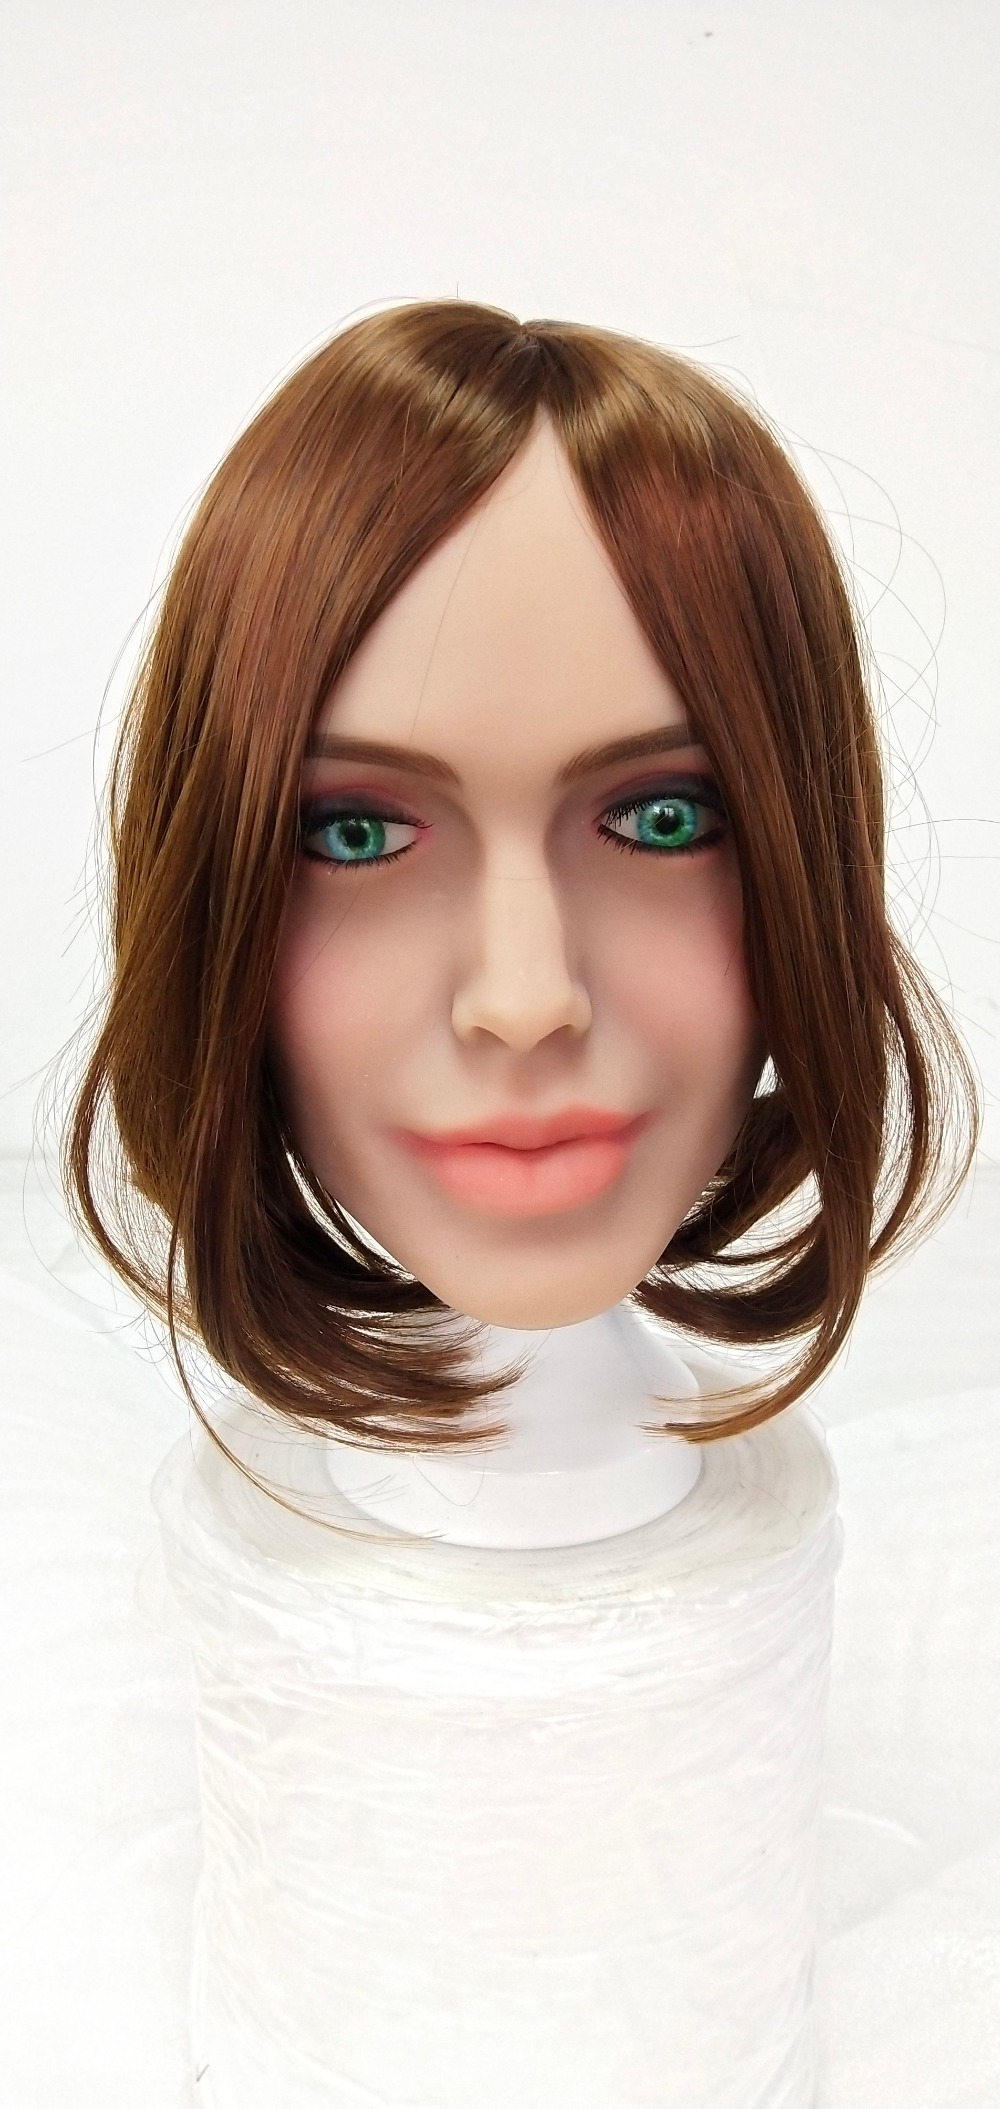 Sex Dolls,Beauty & Health, Cheap Sex Dolls,High Quality Beauty & Health,Sex Dolls, ,  High Quality Sex Dolls, Sexy Sex Dolls, Sweet Sex Dolls,10*14cm Iron Doll Head Stand Holder for Tpe Doll Sex Doll White doll head support holder Sex Dolls    - 1SexFun